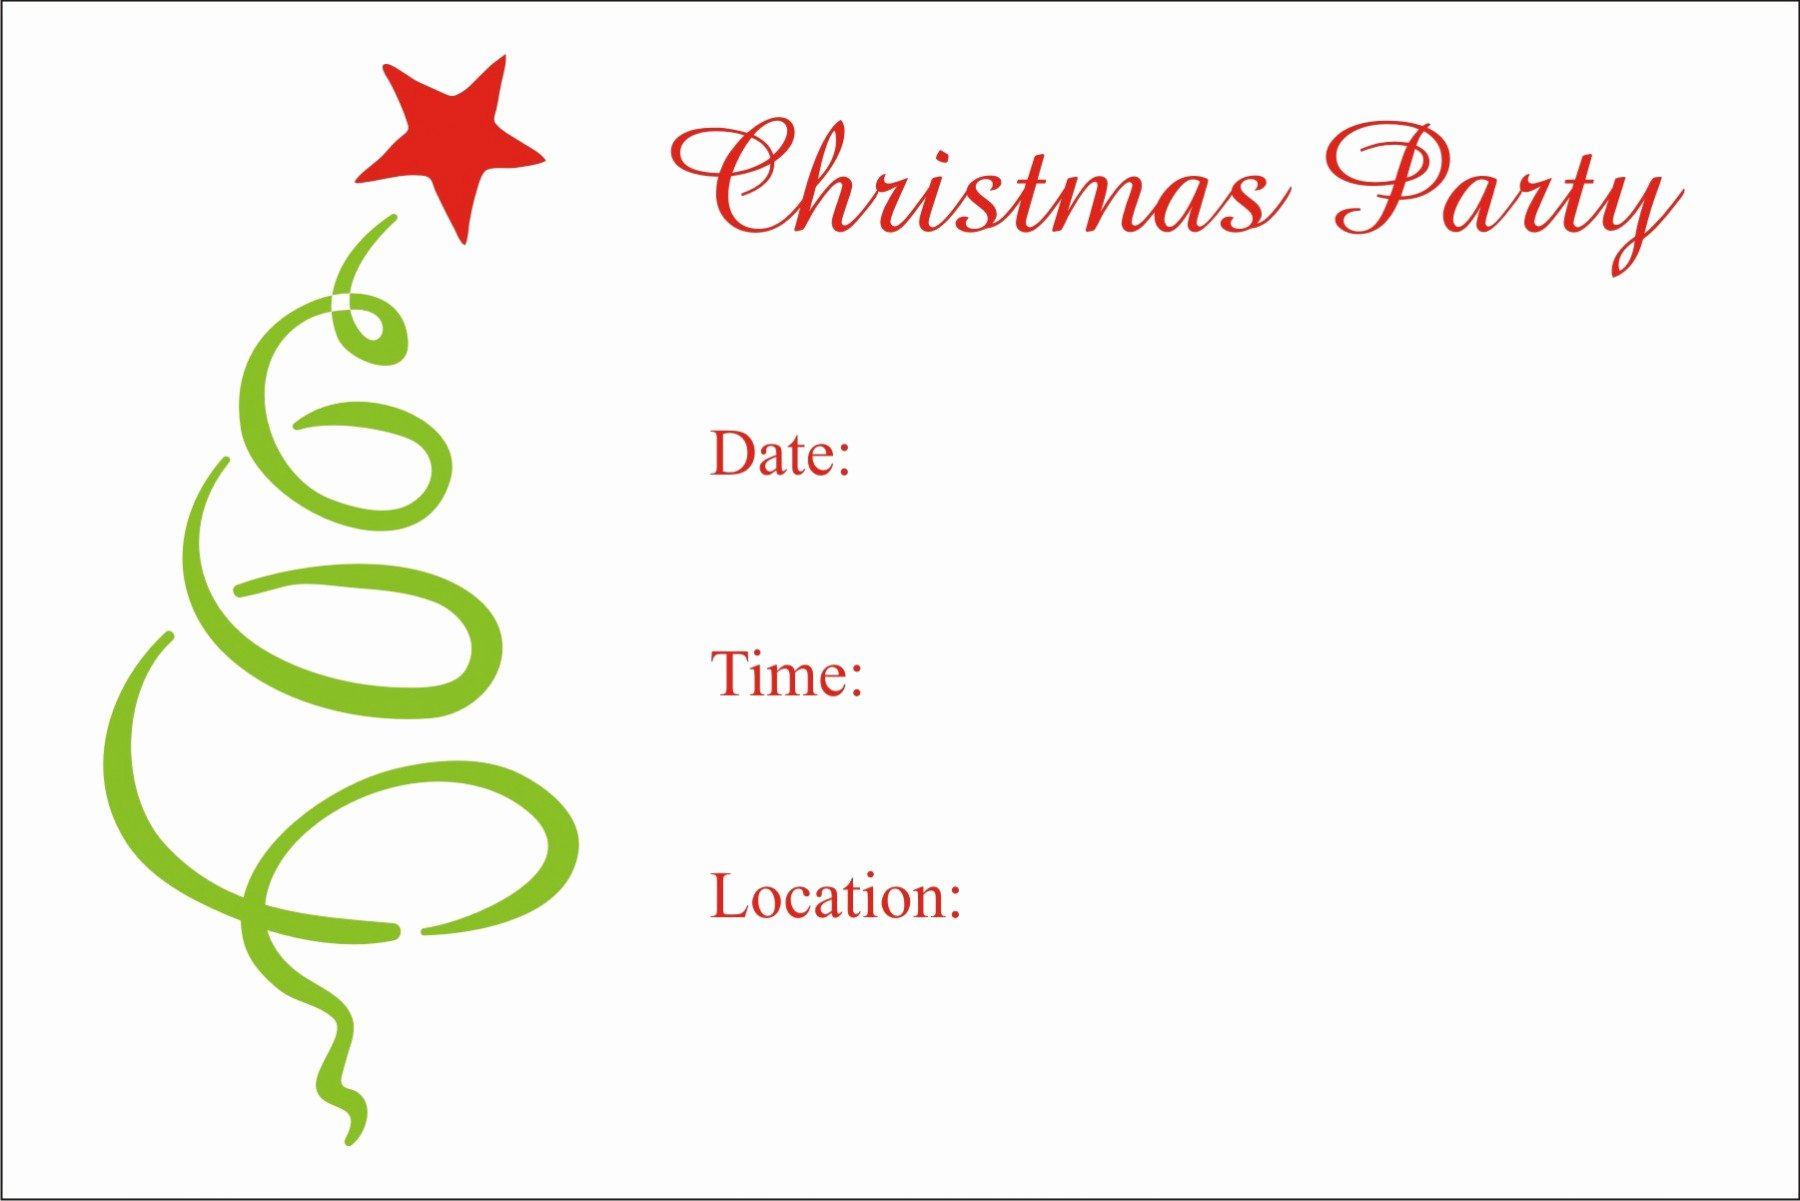 Free Holiday Party Templates Inspirational Christmas Party Free Printable Holiday Invitation